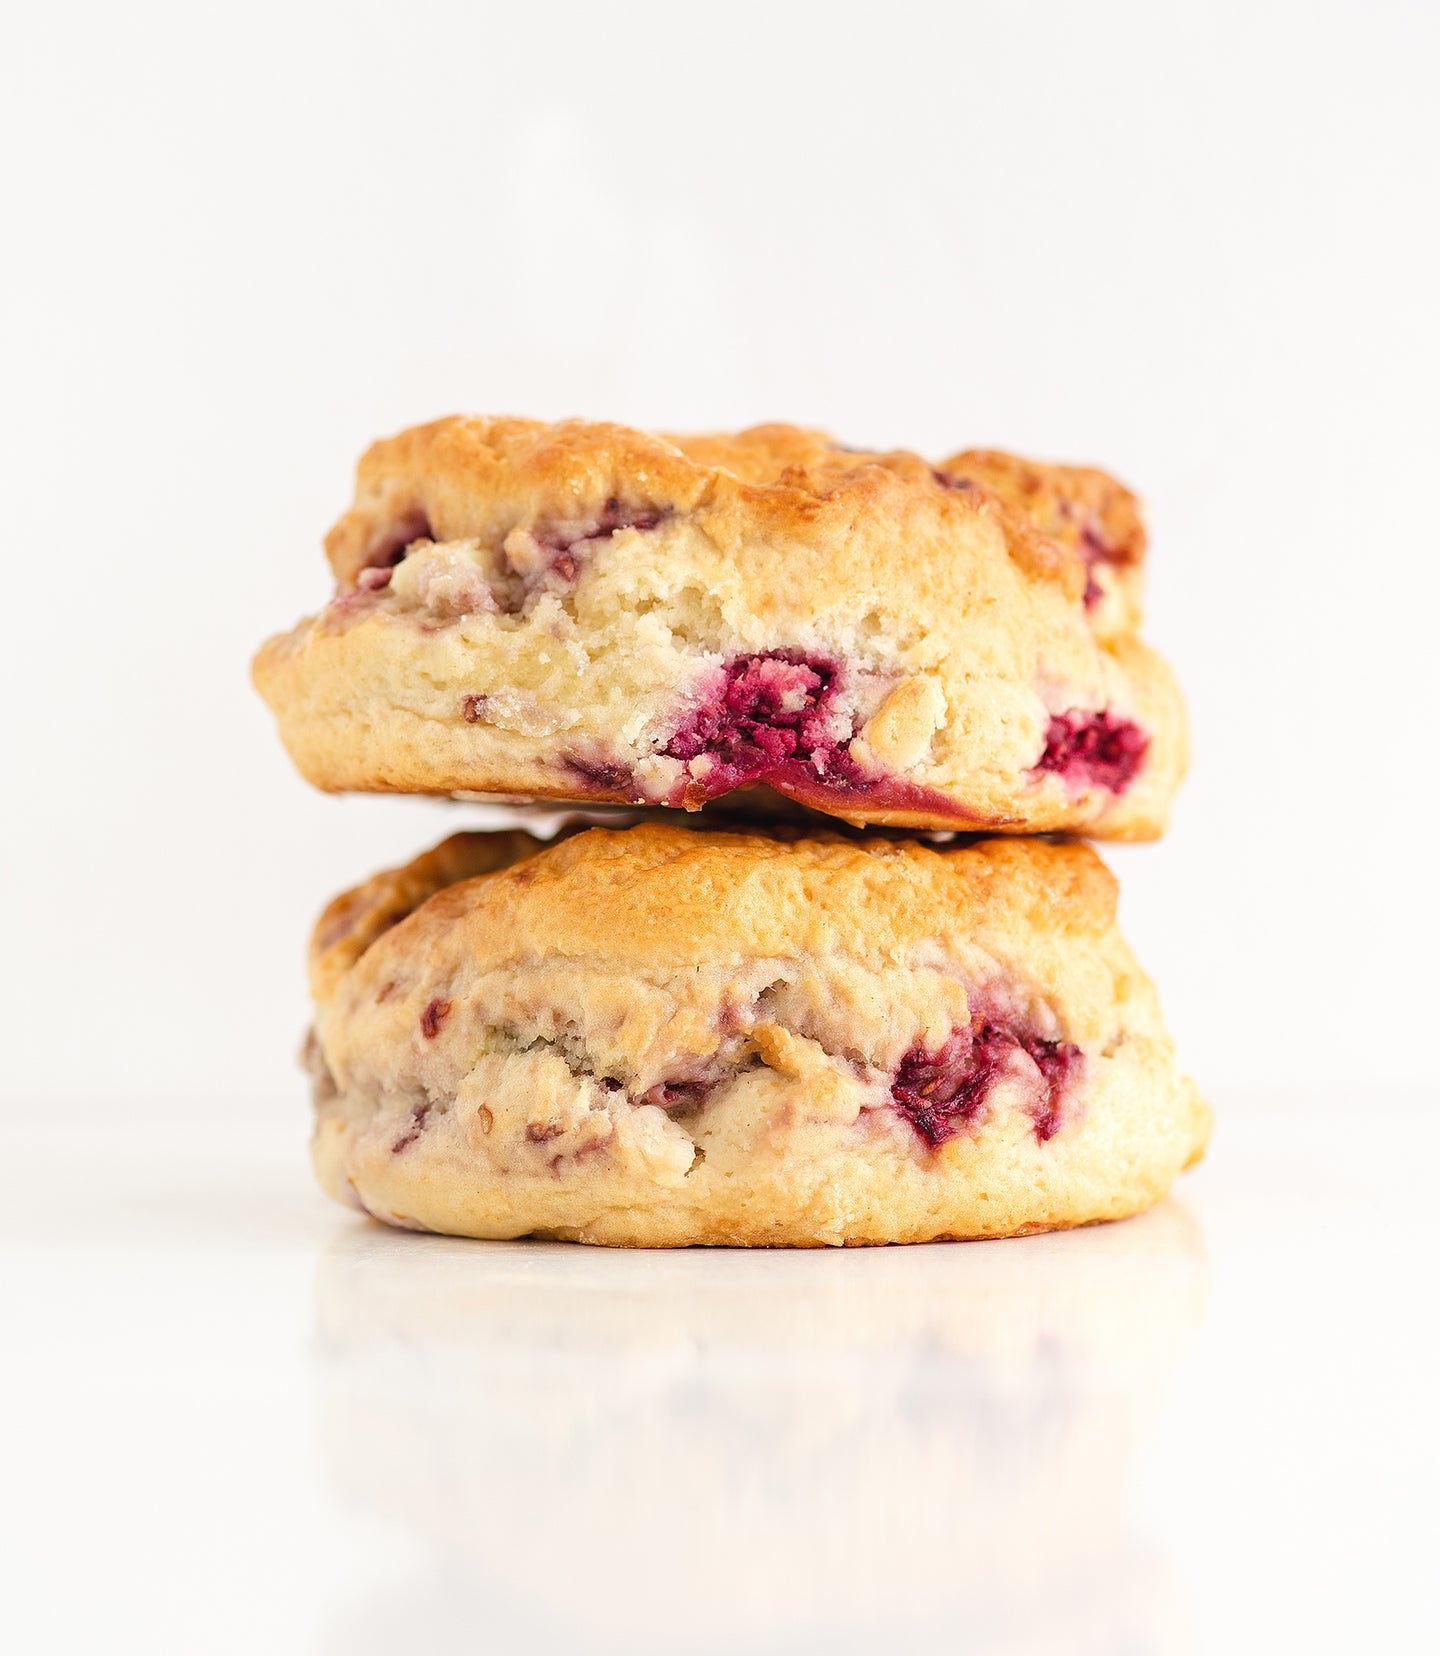 Rasp & White Choc Scones 2 pack